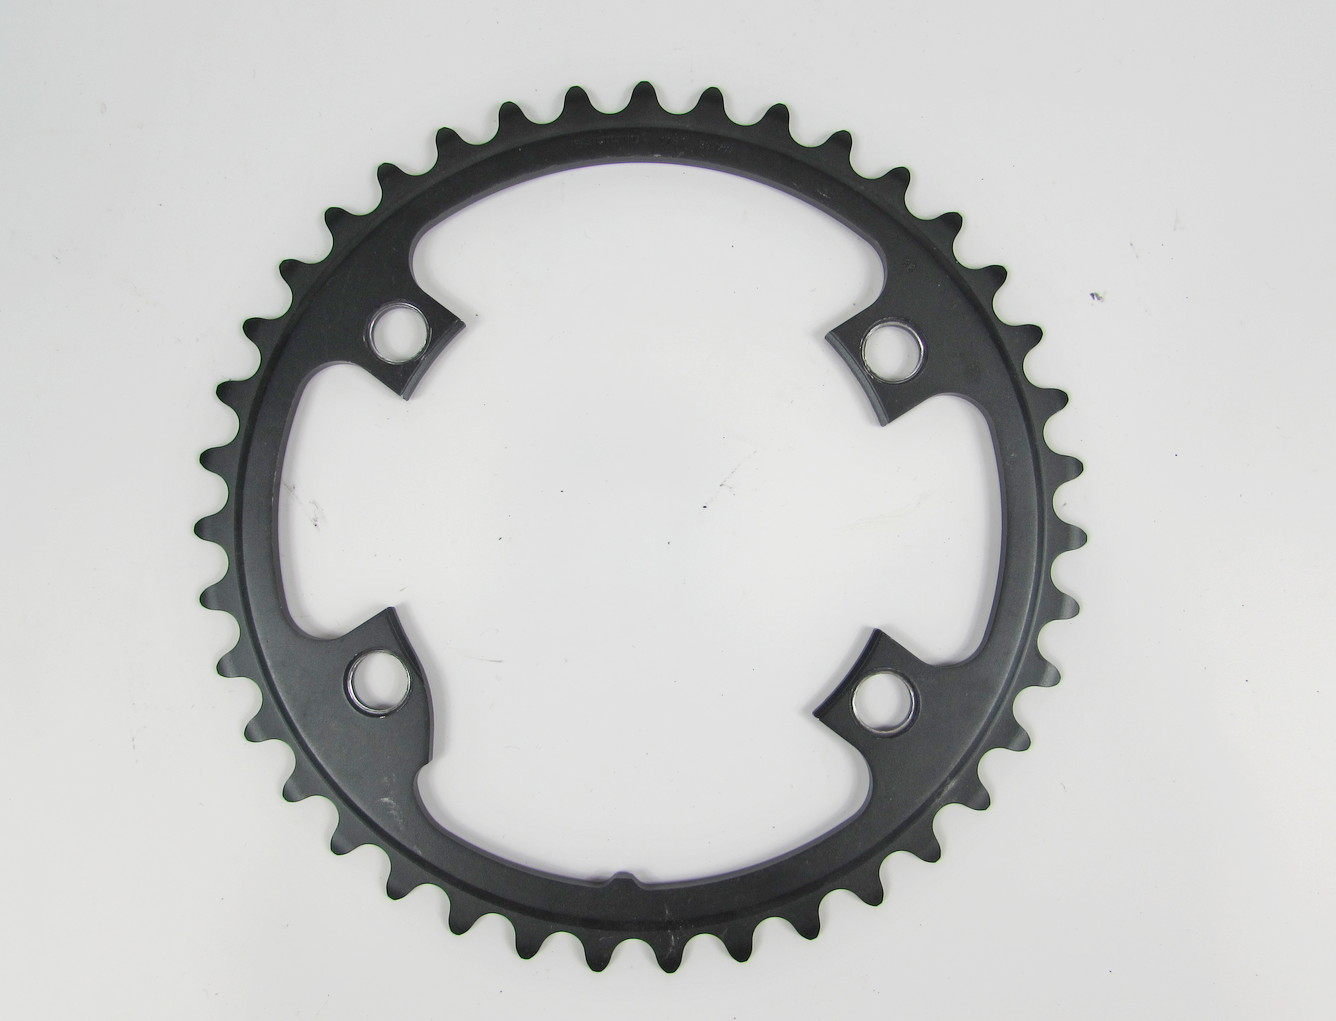 Shimano 39T for cranks Dura-Ace FC-9100